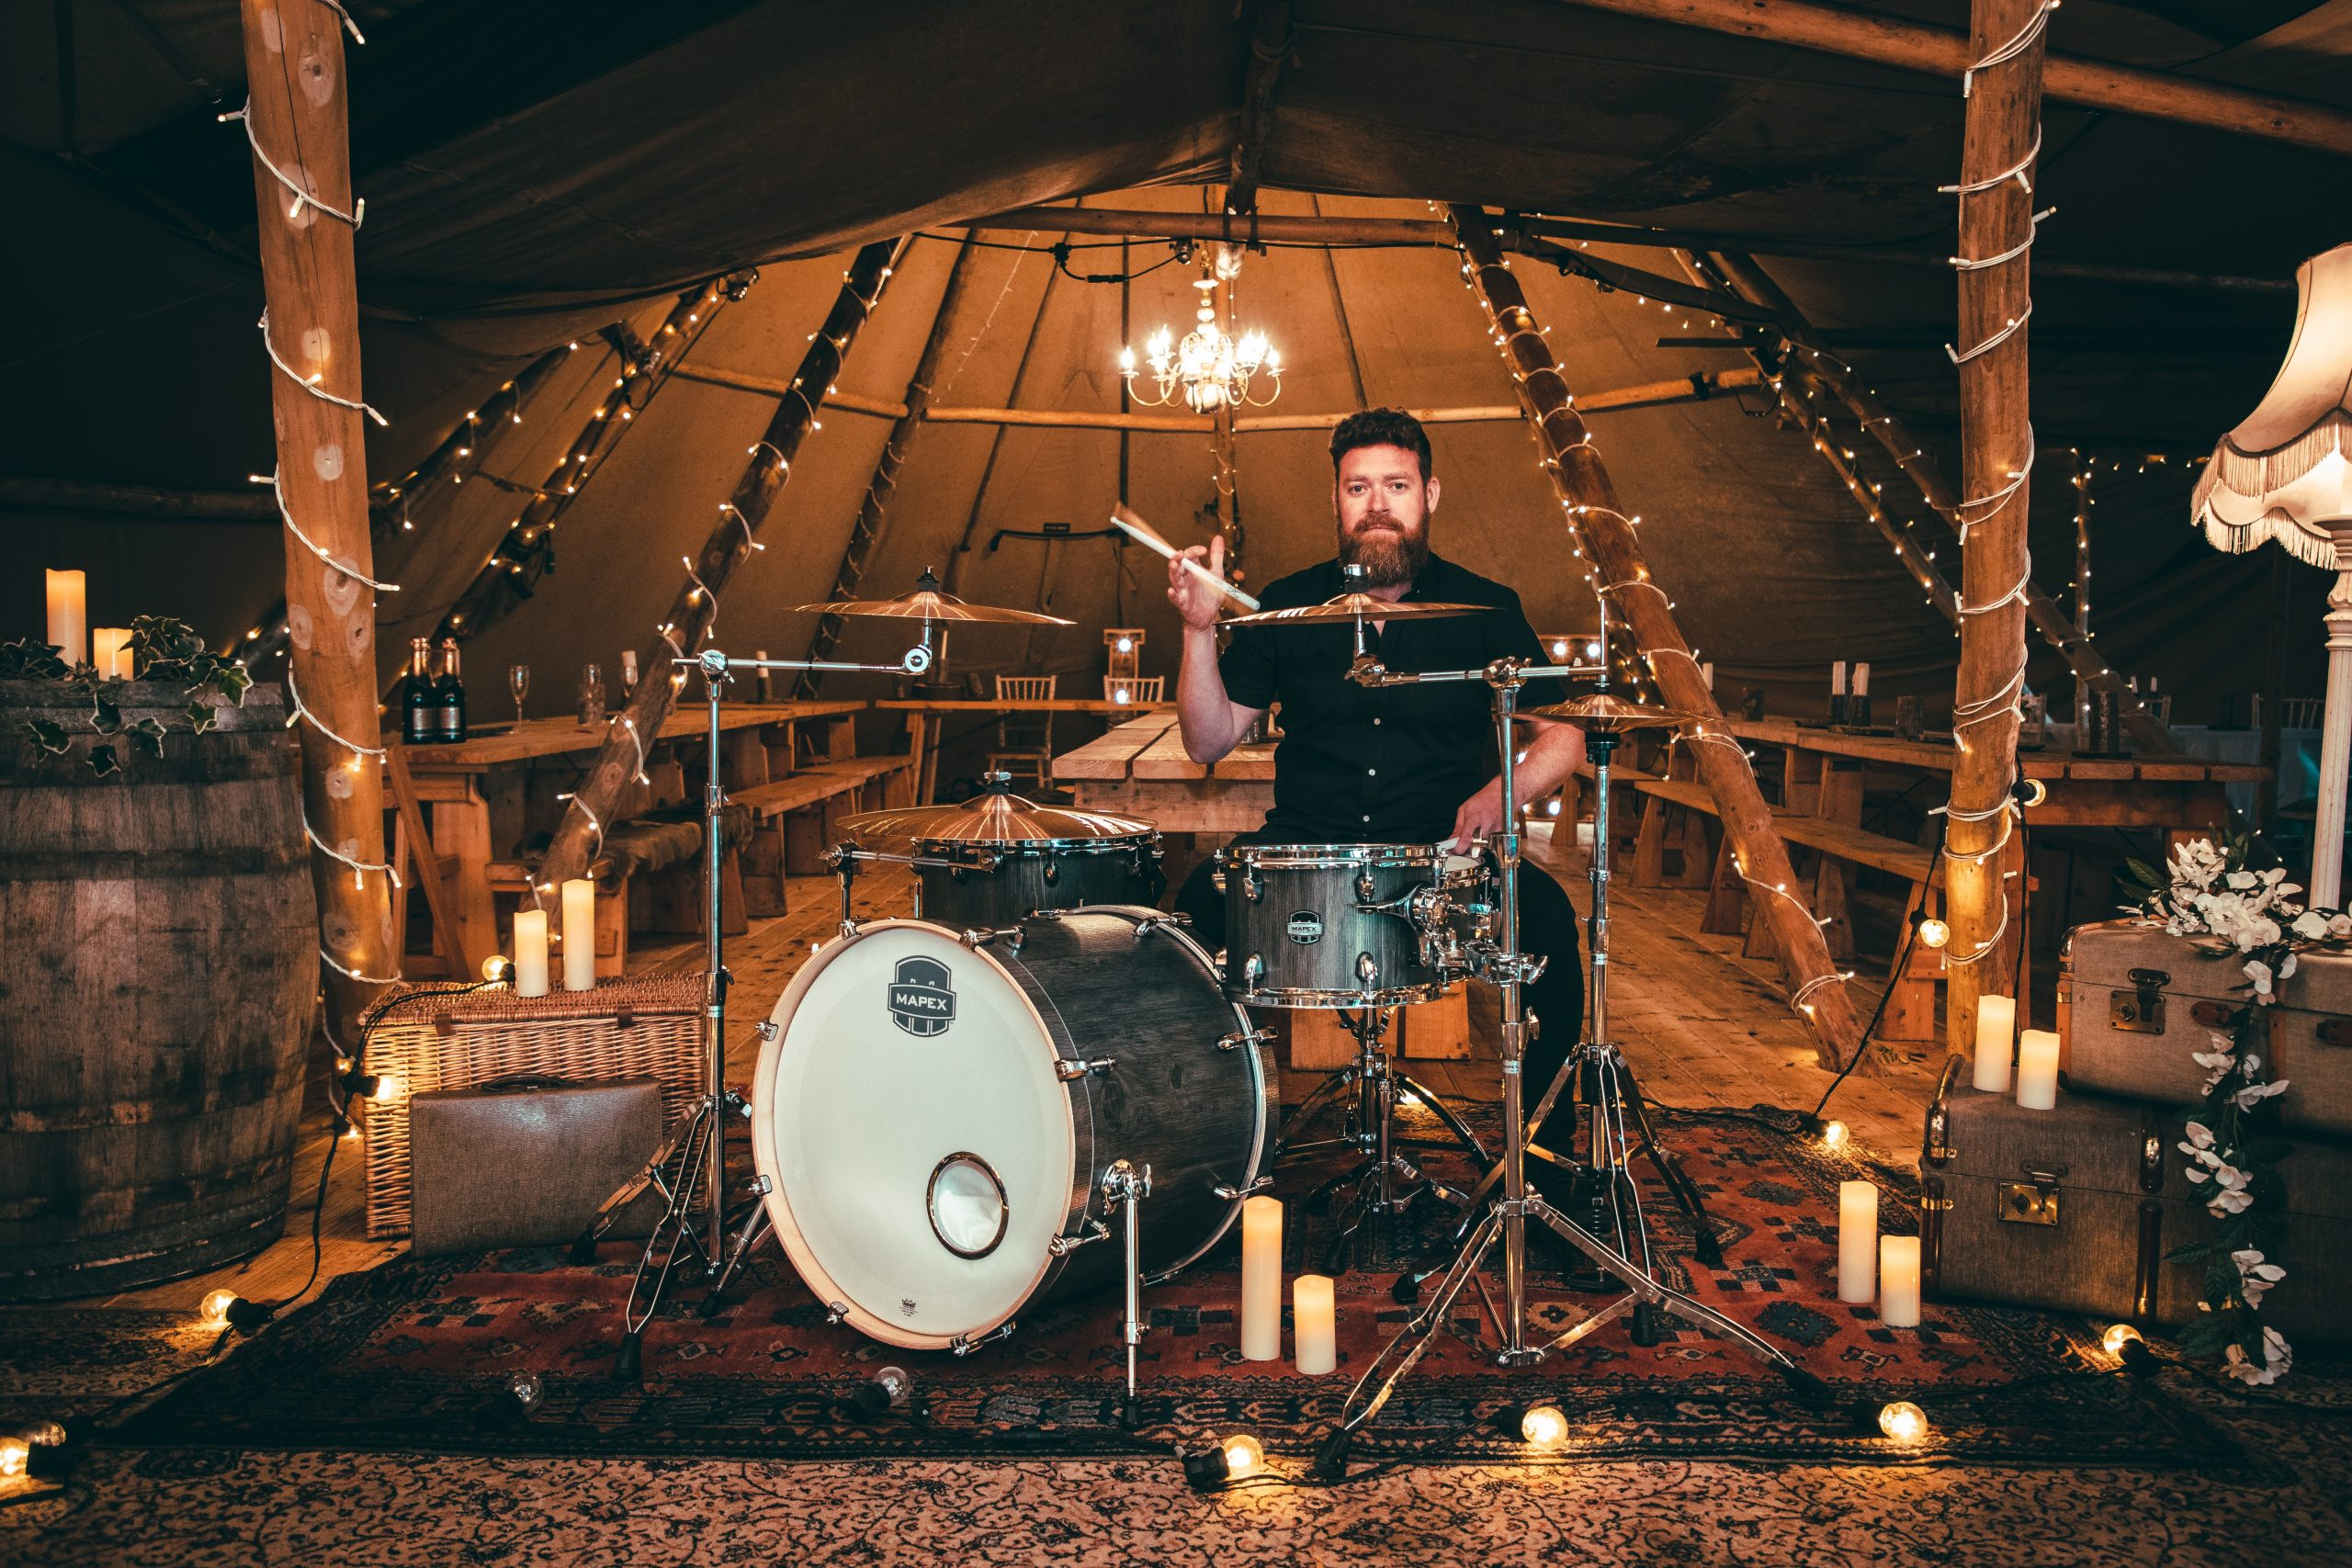 drummer-at-wedding-candles-rustic